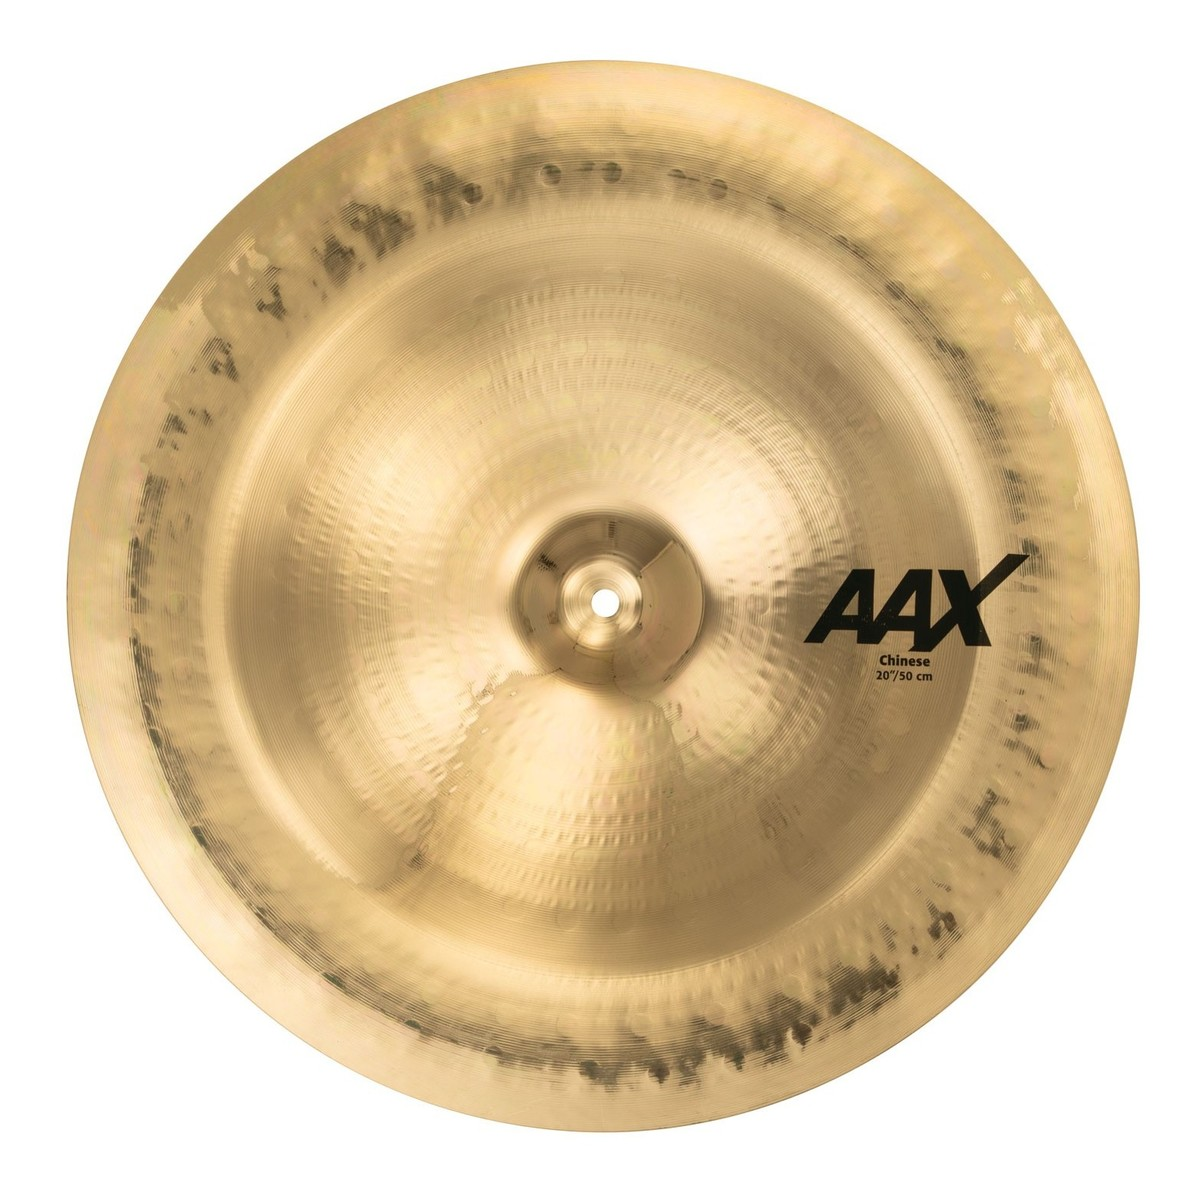 Click to view product details and reviews for Sabian Aax 20 Chinese Cymbal Brilliant Finish.